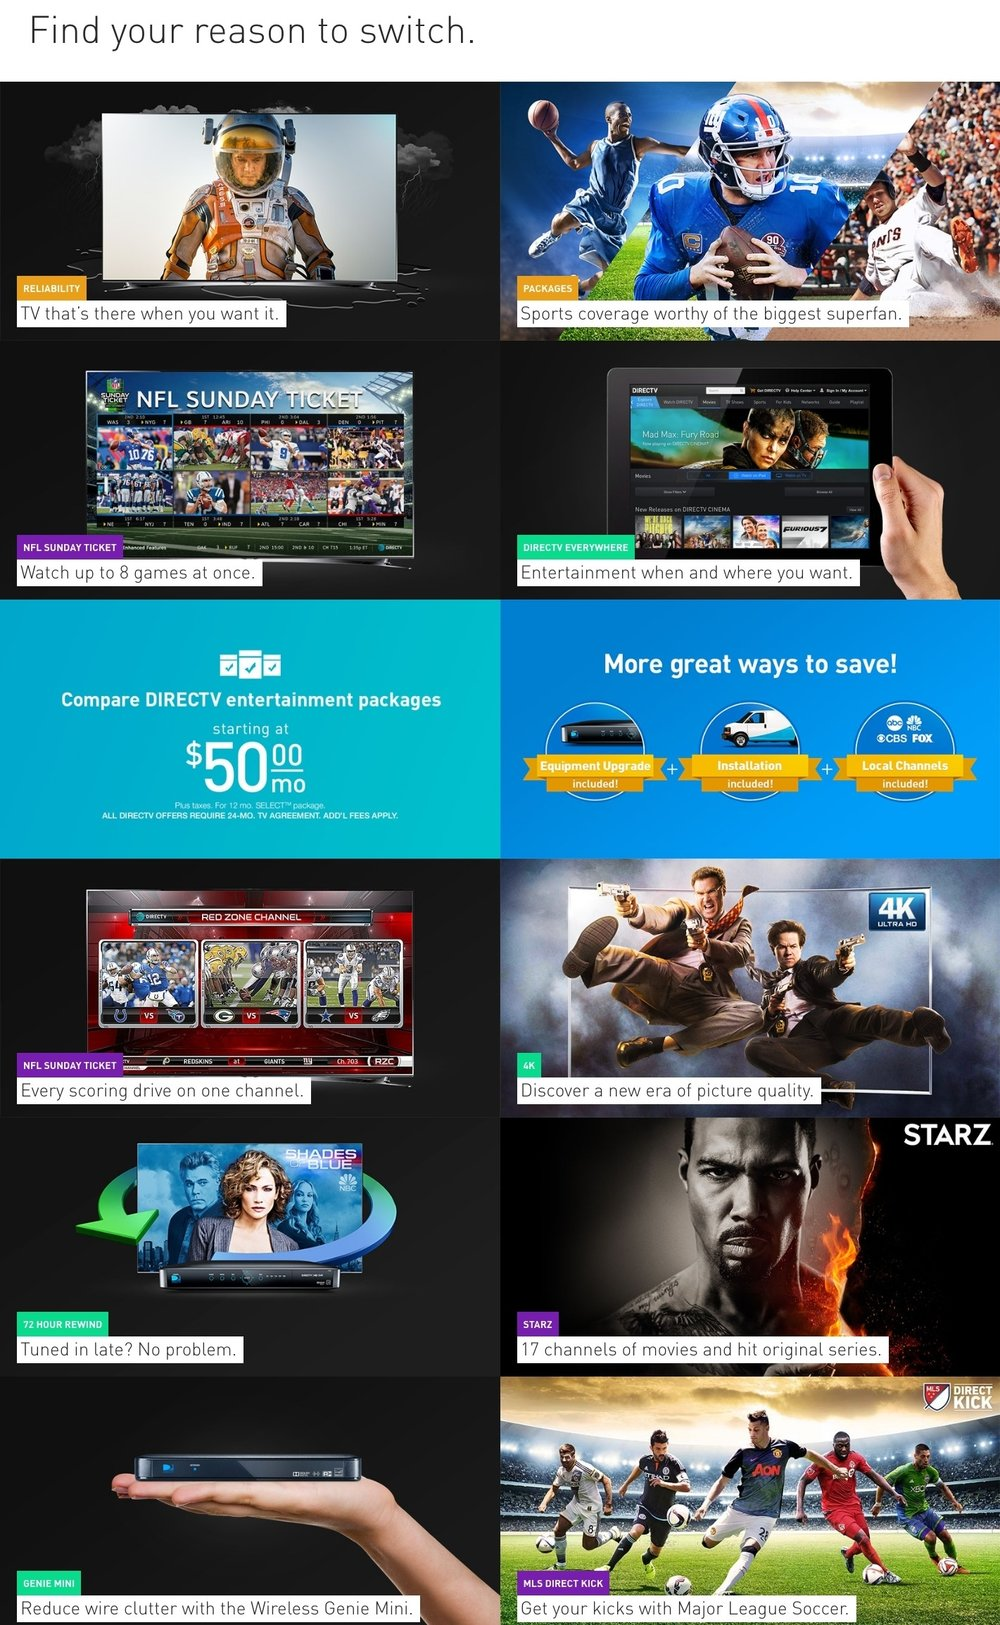 DIRECTV marketing 1point0.jpg